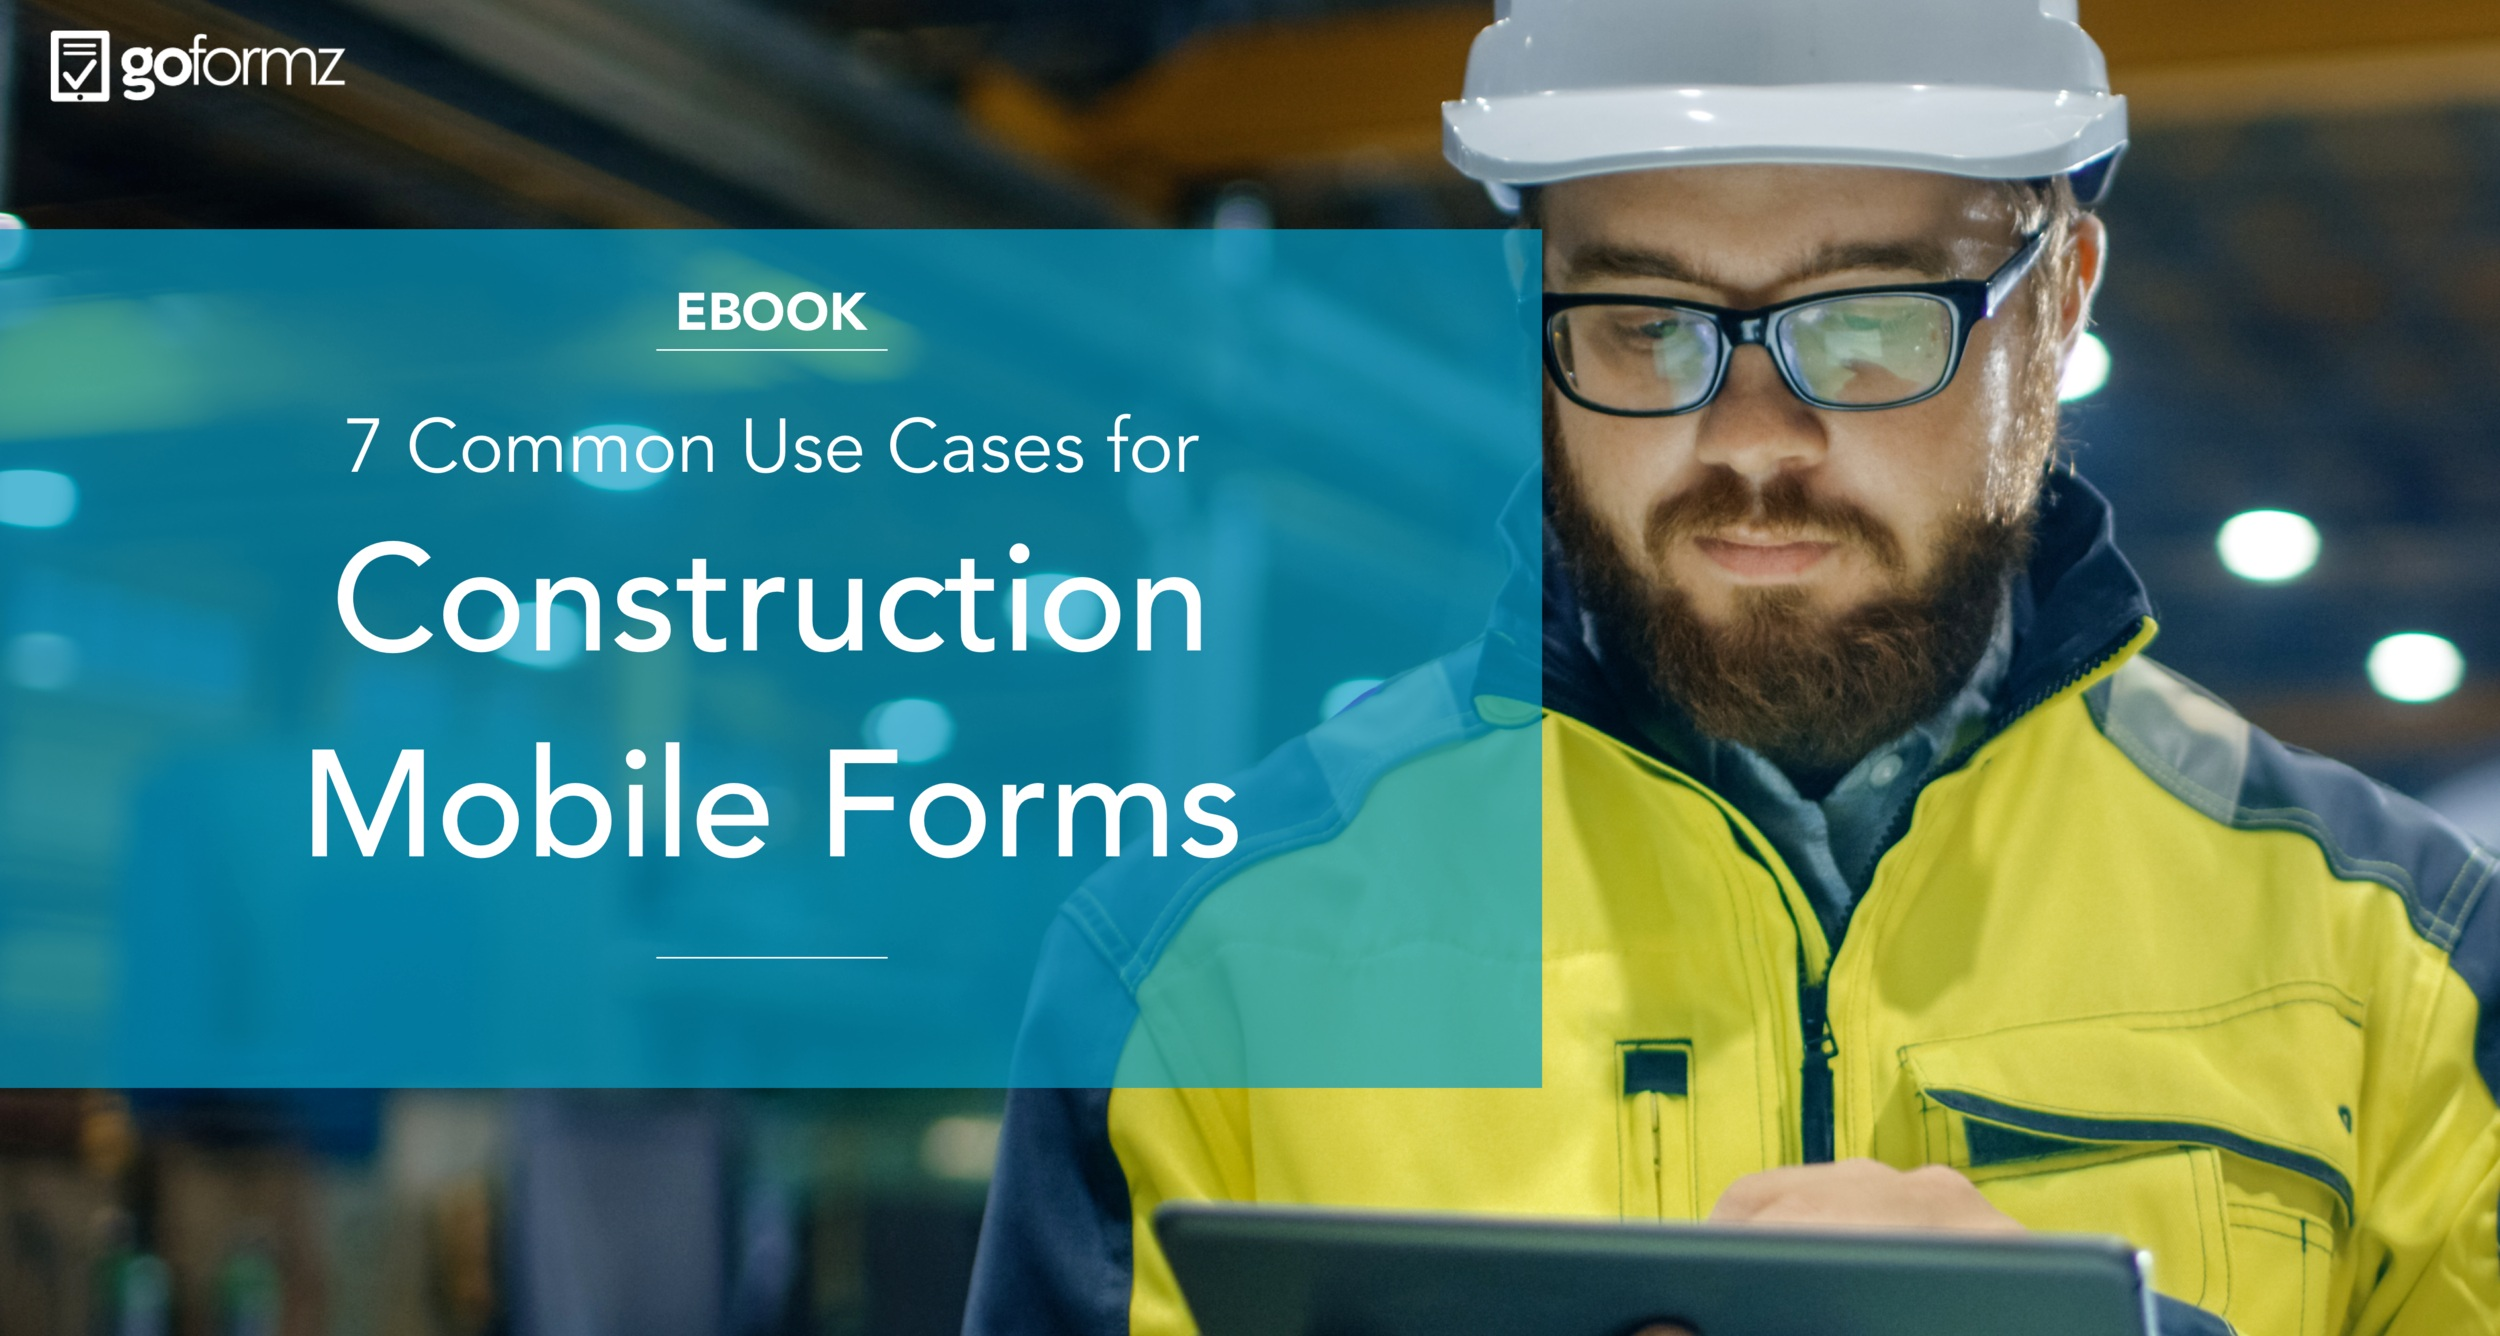 7 common use cases for construction mobile forms - ebook